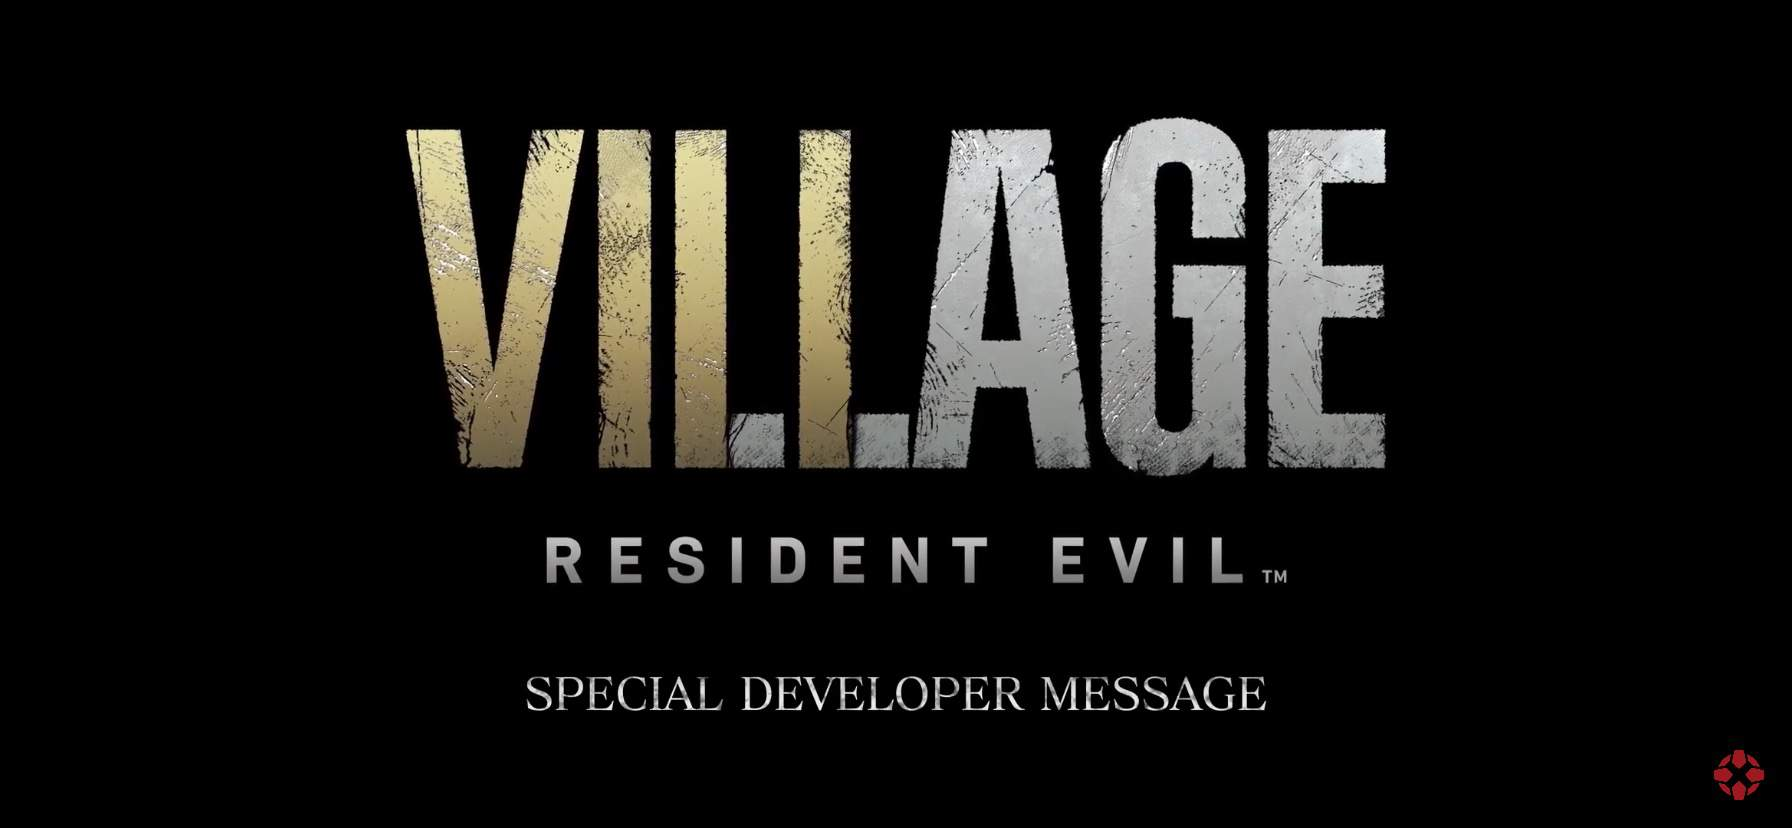 Resident Evil 8 Village Breakdown And Theories Part 3 Developer Note And Website Analysis Video Games Amino